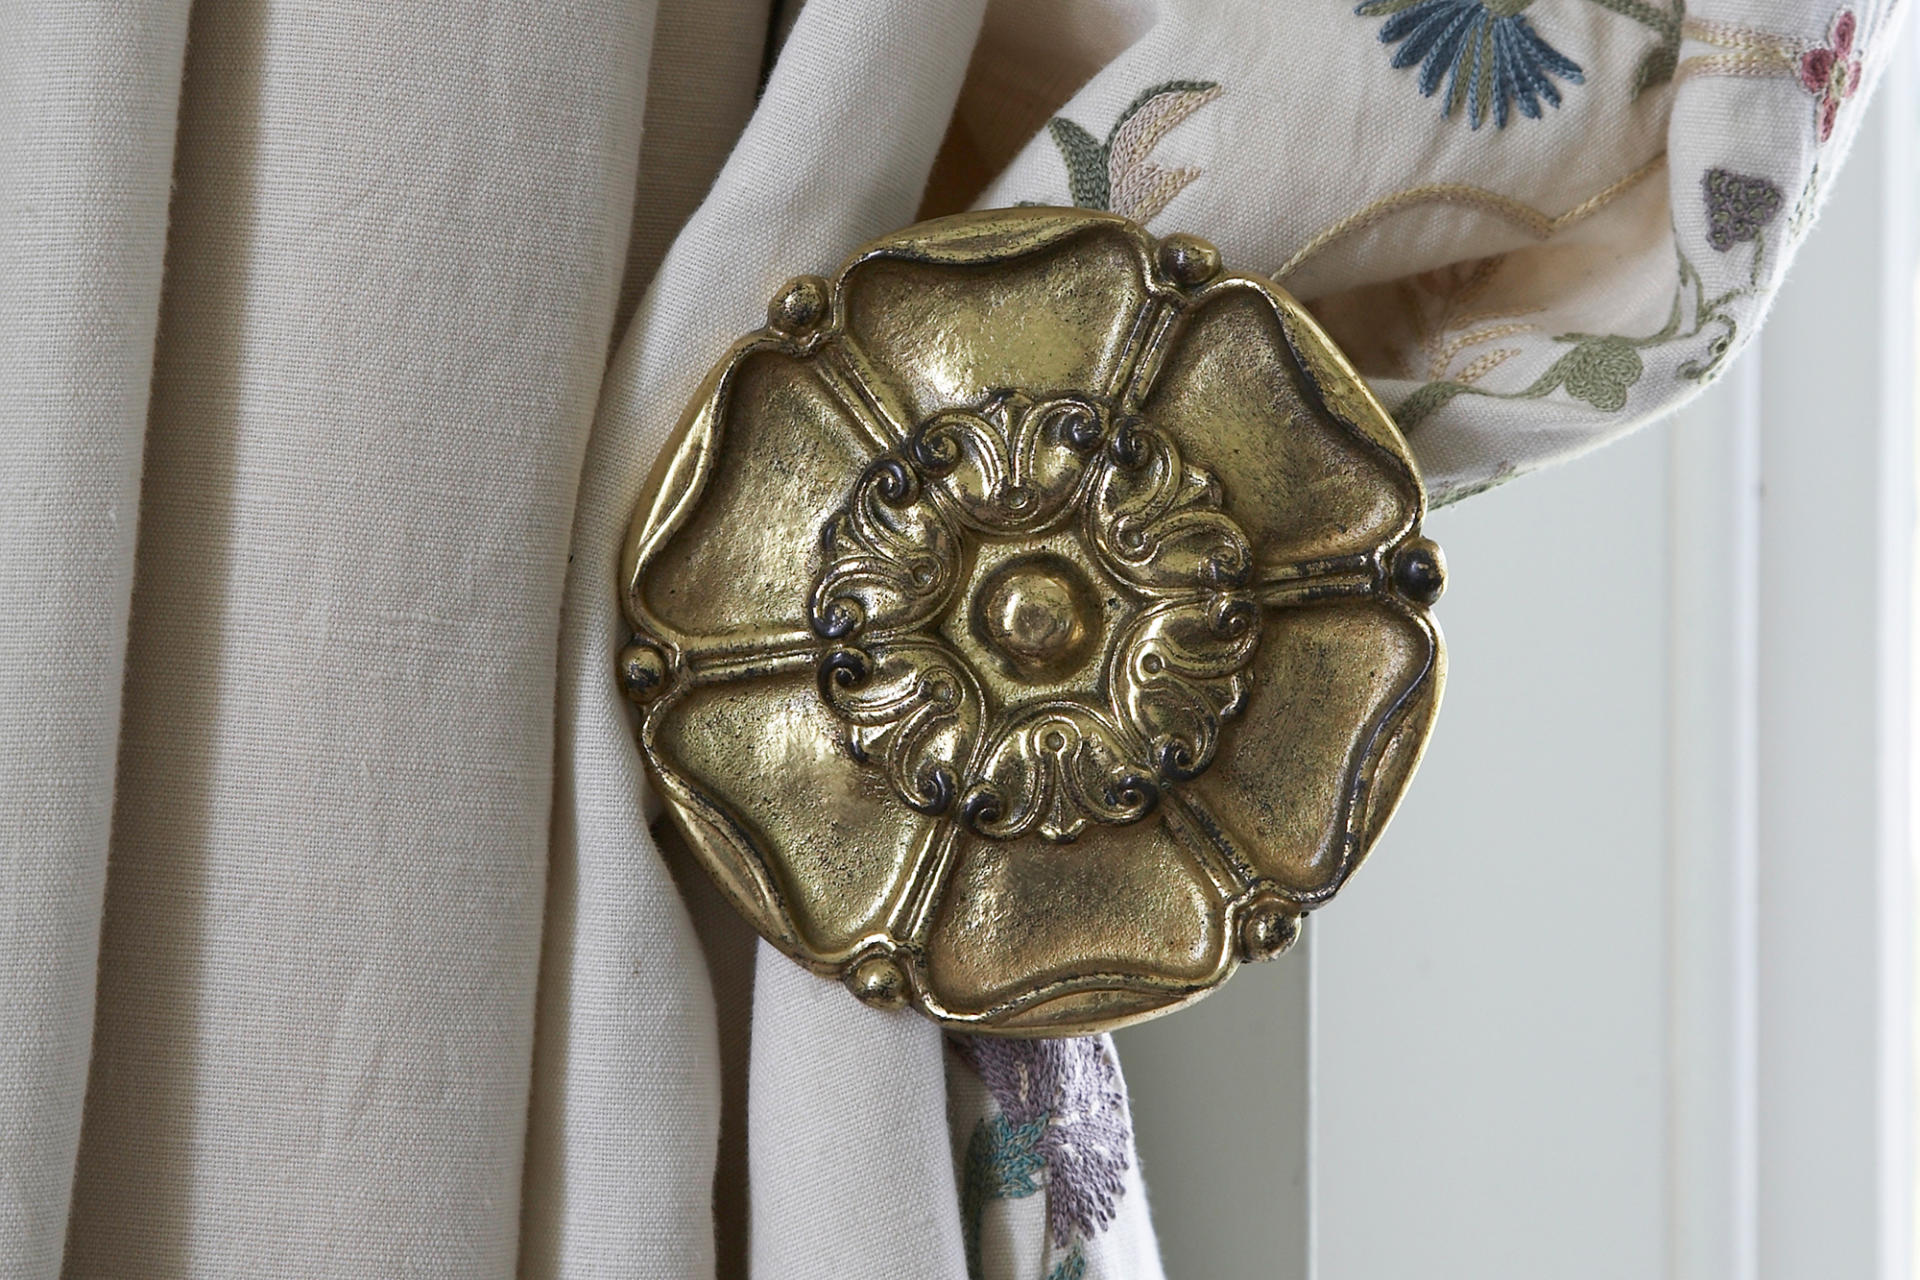 Hope curtain tieback - period hardware by Collier Webb